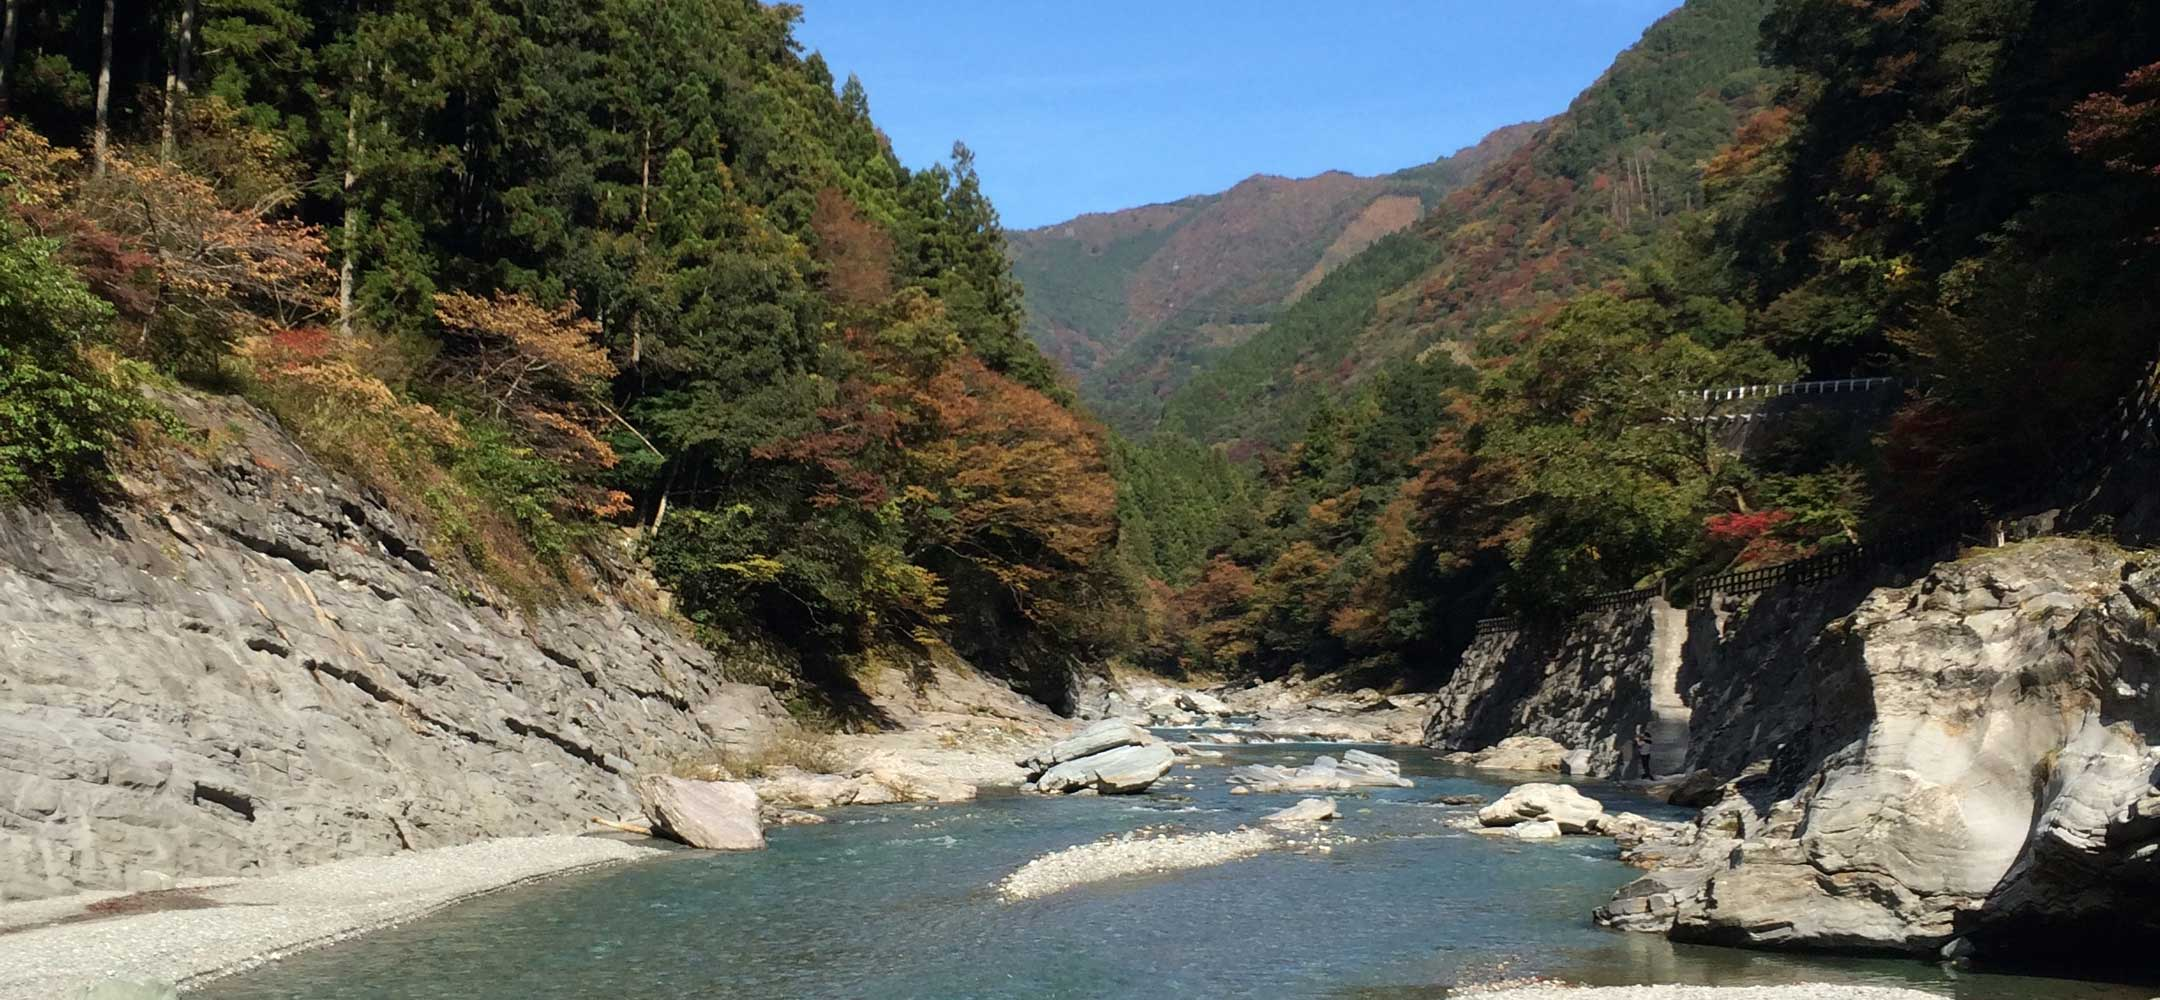 Day Trip to the Iya Valley